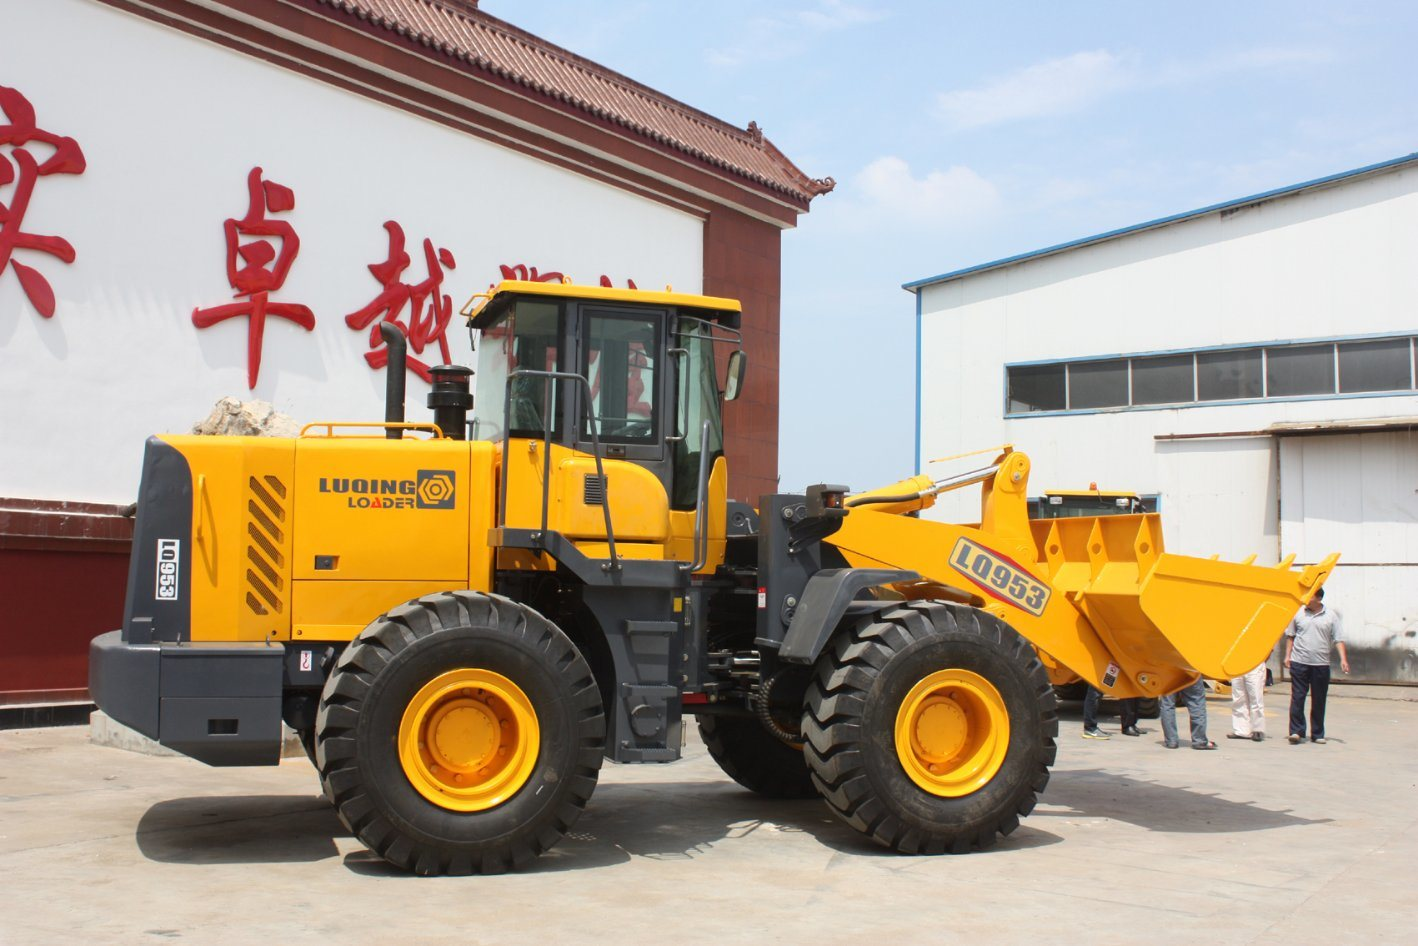 Five Tons Wheel Loader (LQ953) Sdlg Lingong Design 5 Tons pictures & photos